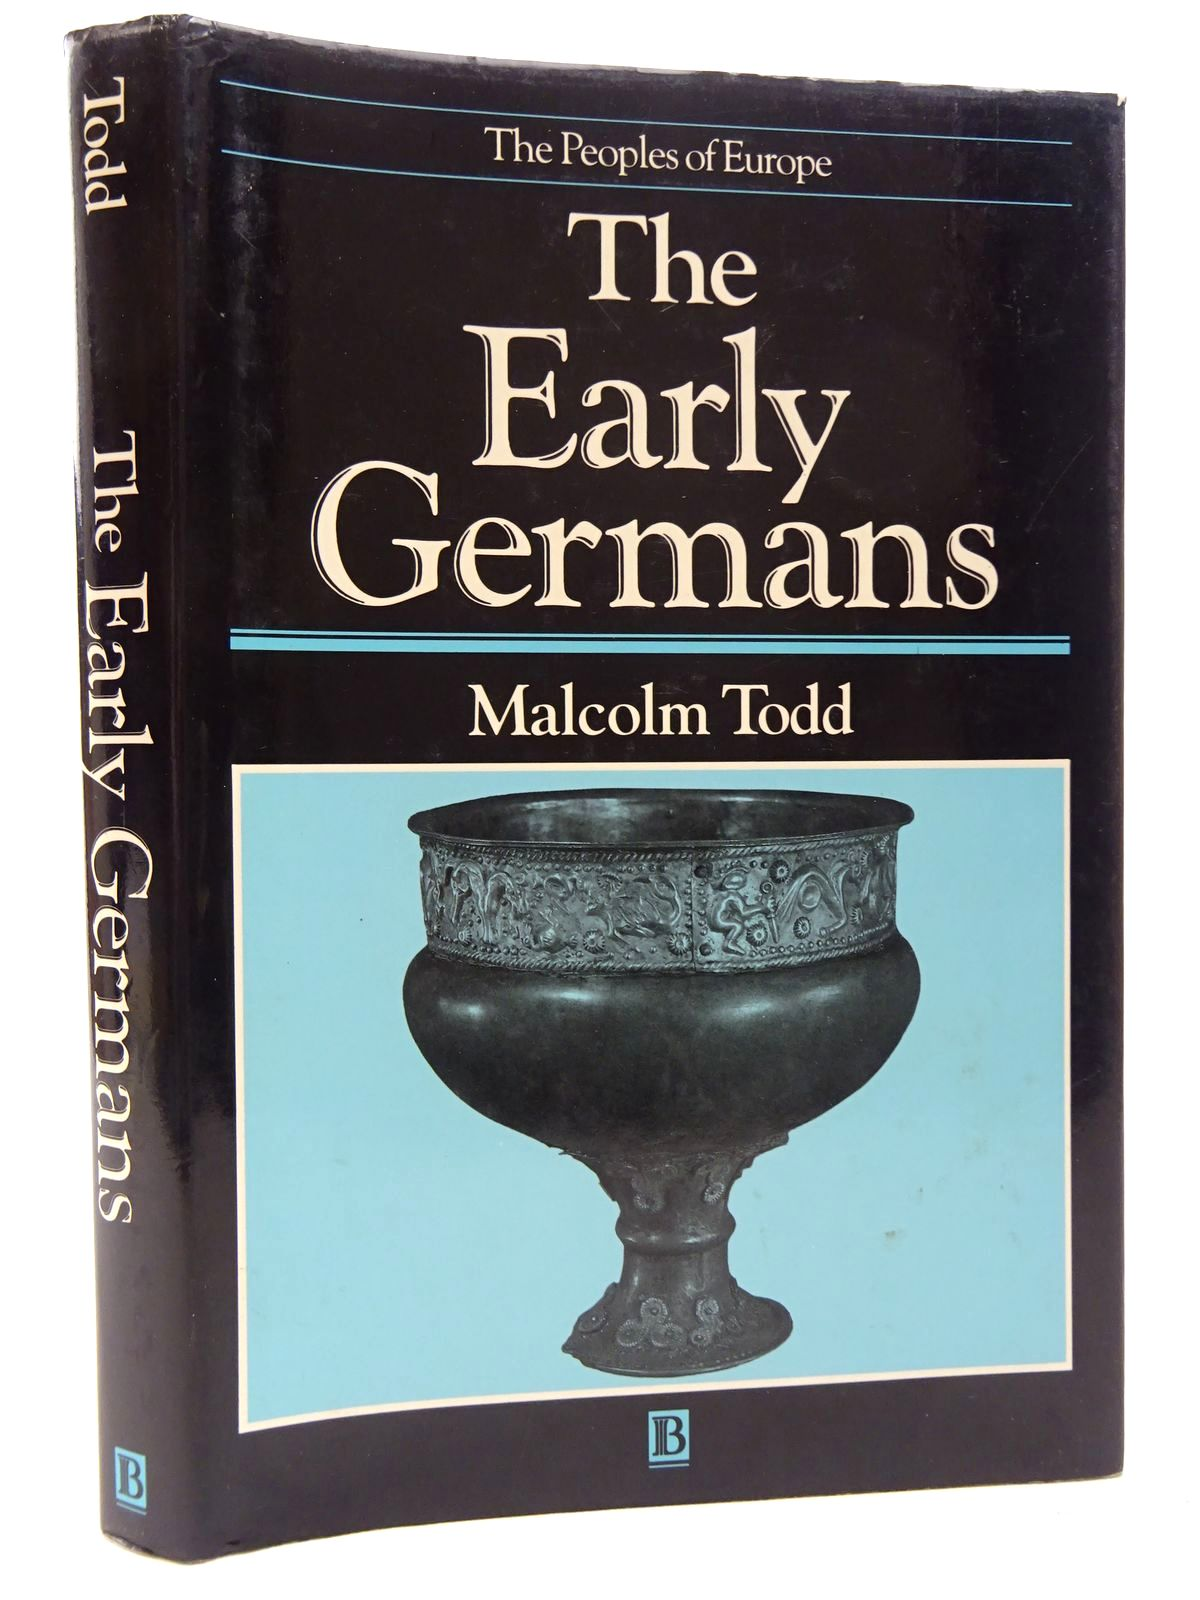 Photo of THE EARLY GERMANS (THE PEOPLES OF EUROPE) written by Todd, Malcolm published by Blackwell (STOCK CODE: 1815895)  for sale by Stella & Rose's Books